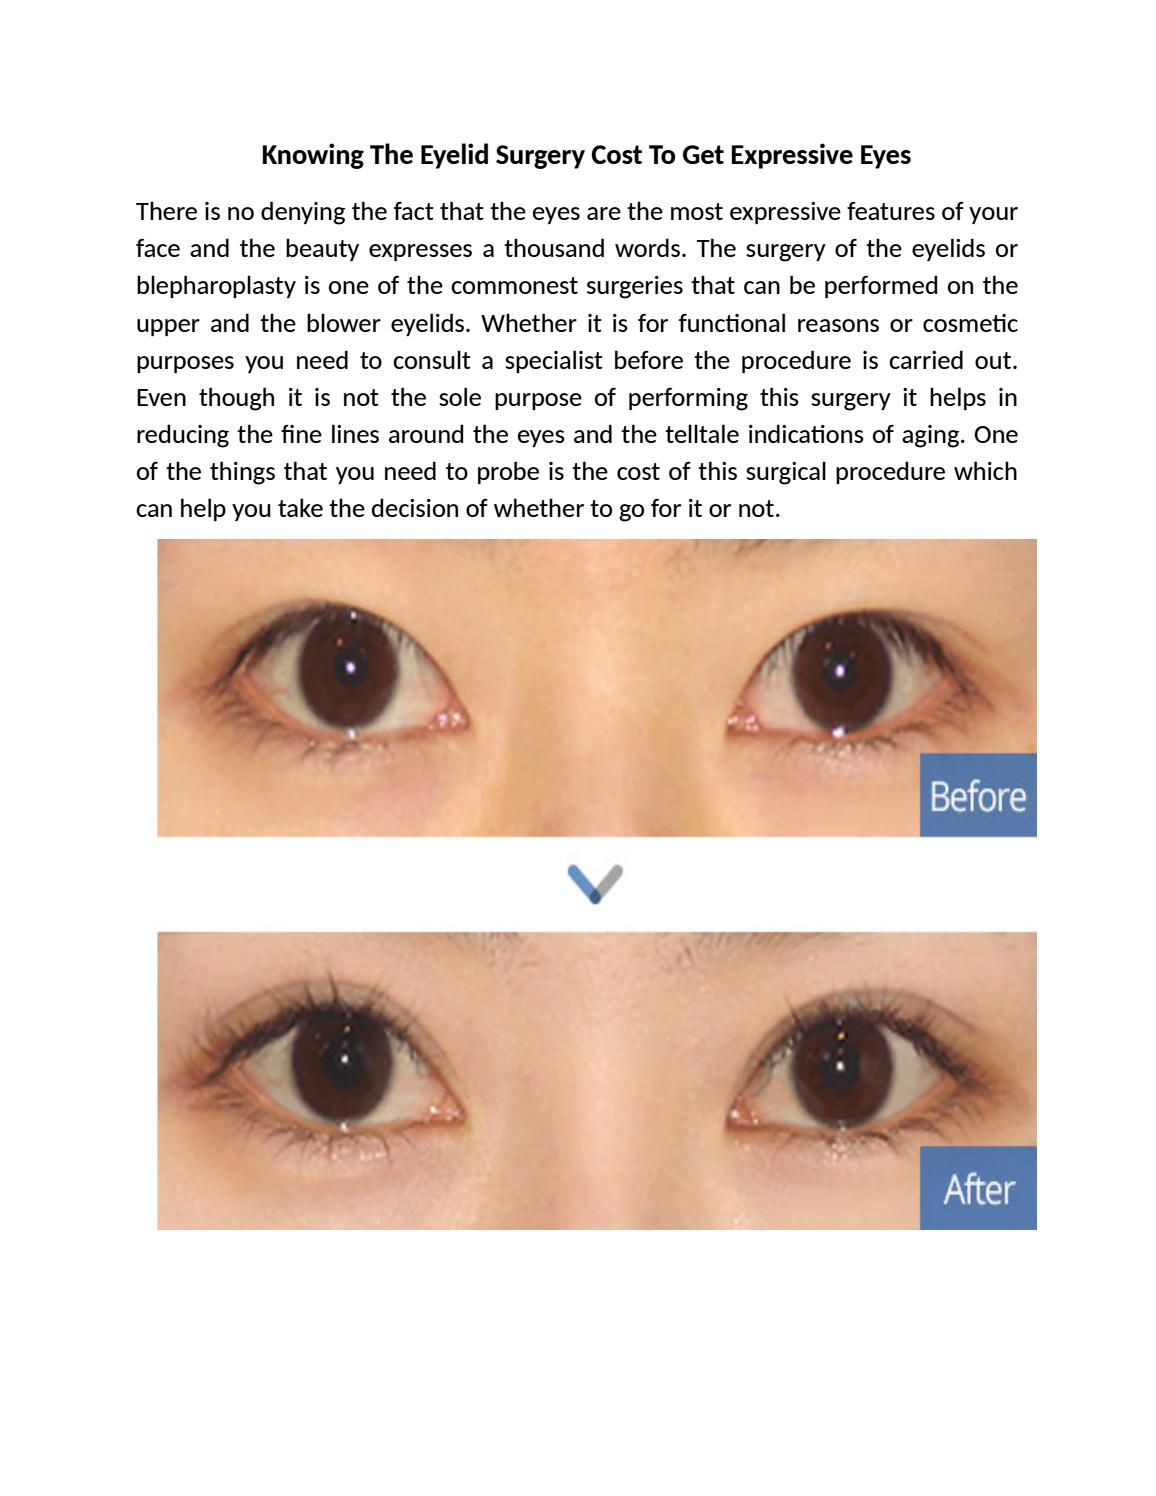 Knowing The Eyelid Surgery Cost To Get Expressive Eyes by